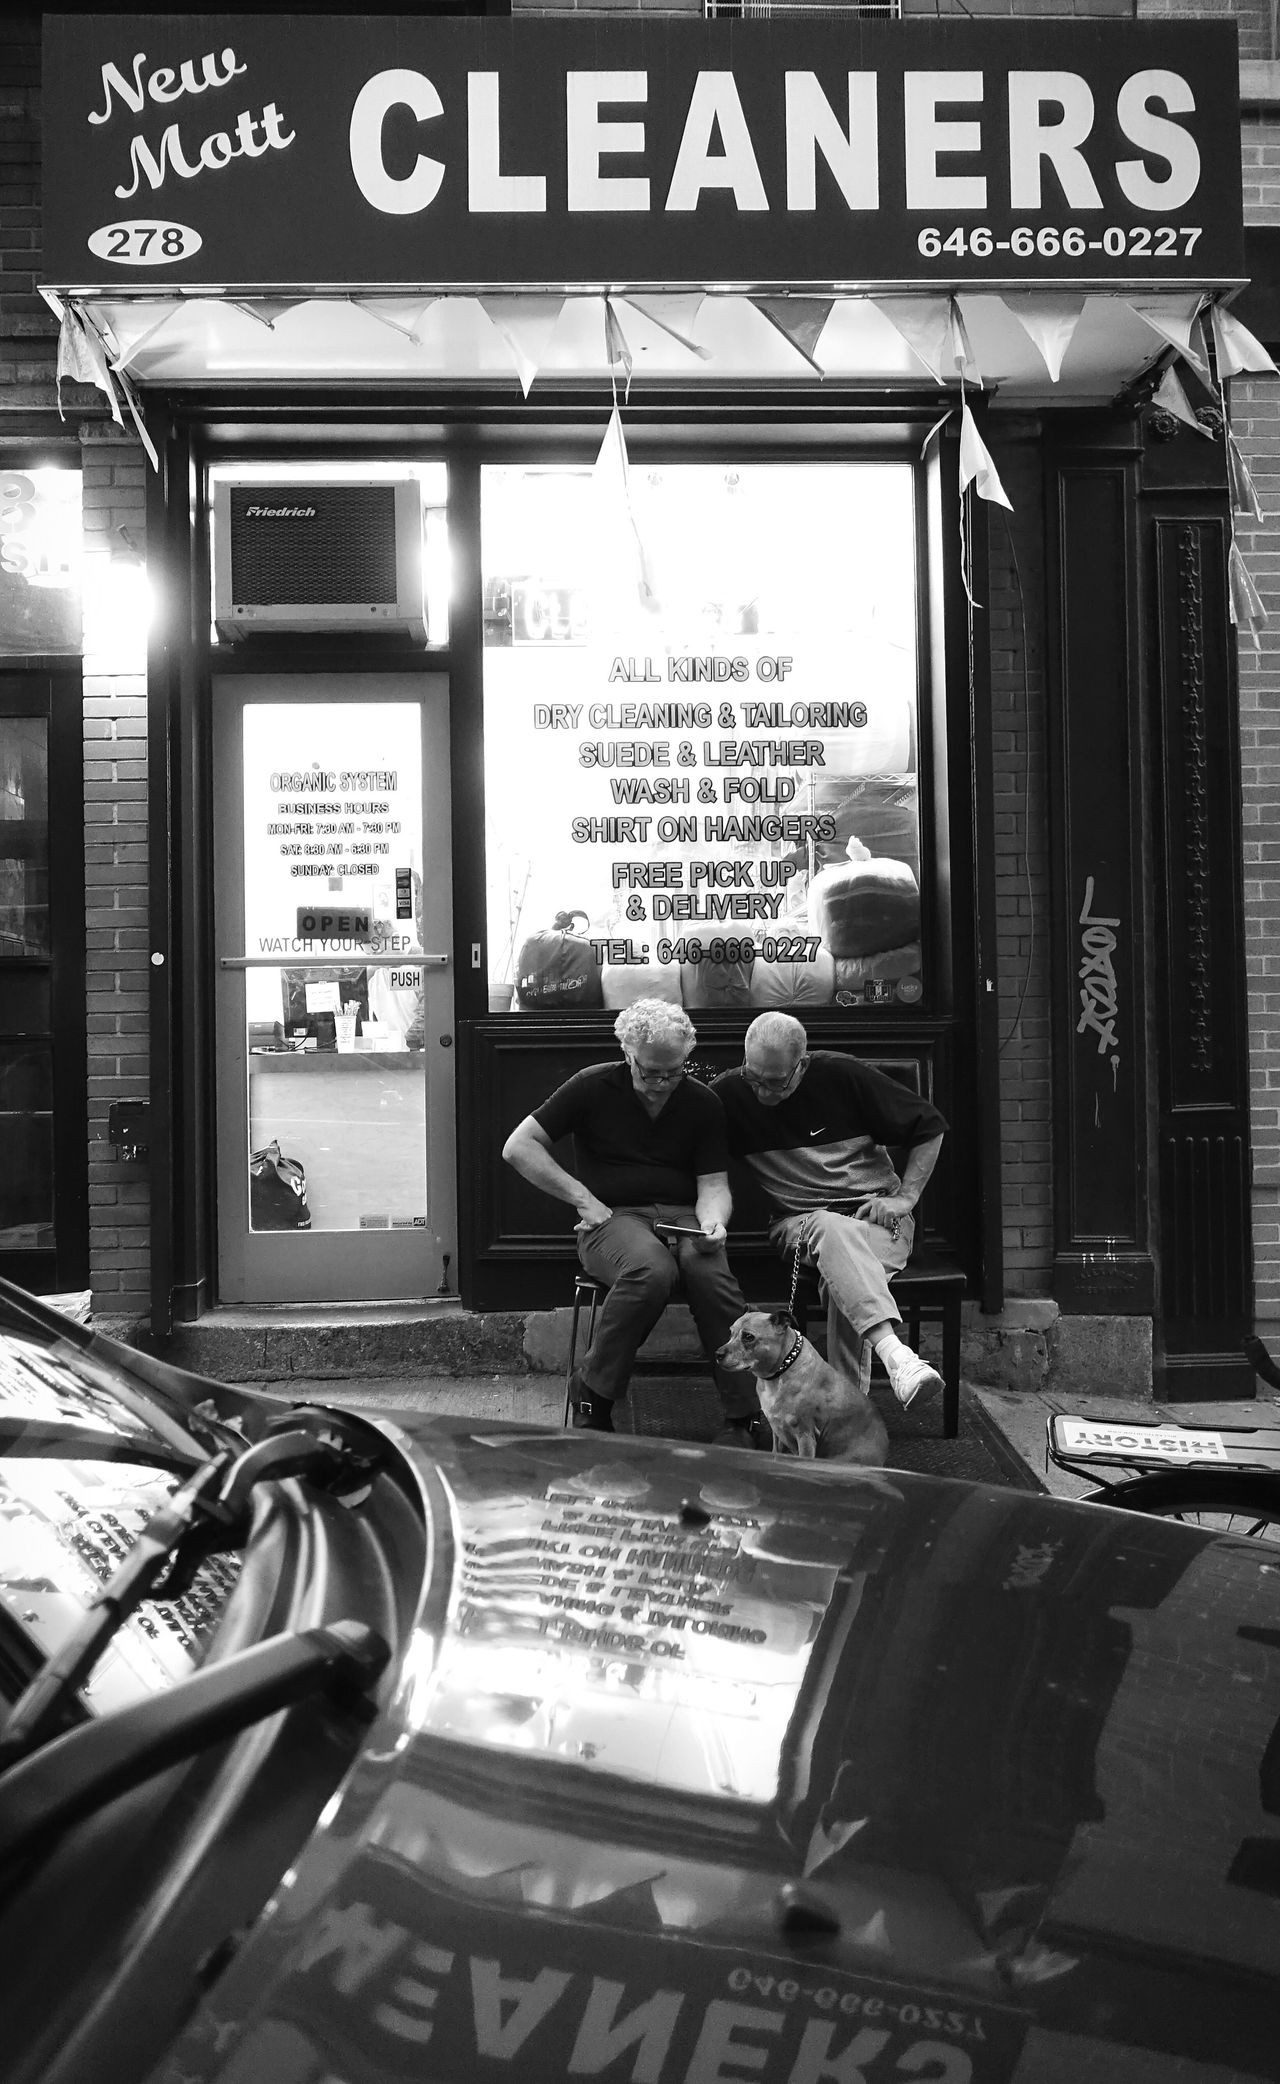 Text Built Structure Architecture Building Exterior Outdoors City People Reading Sign Shop Sign NYC Street Photography EyeEm Best Shots Black And White Blackandwhite Blackandwhite Photography Black And White Photography